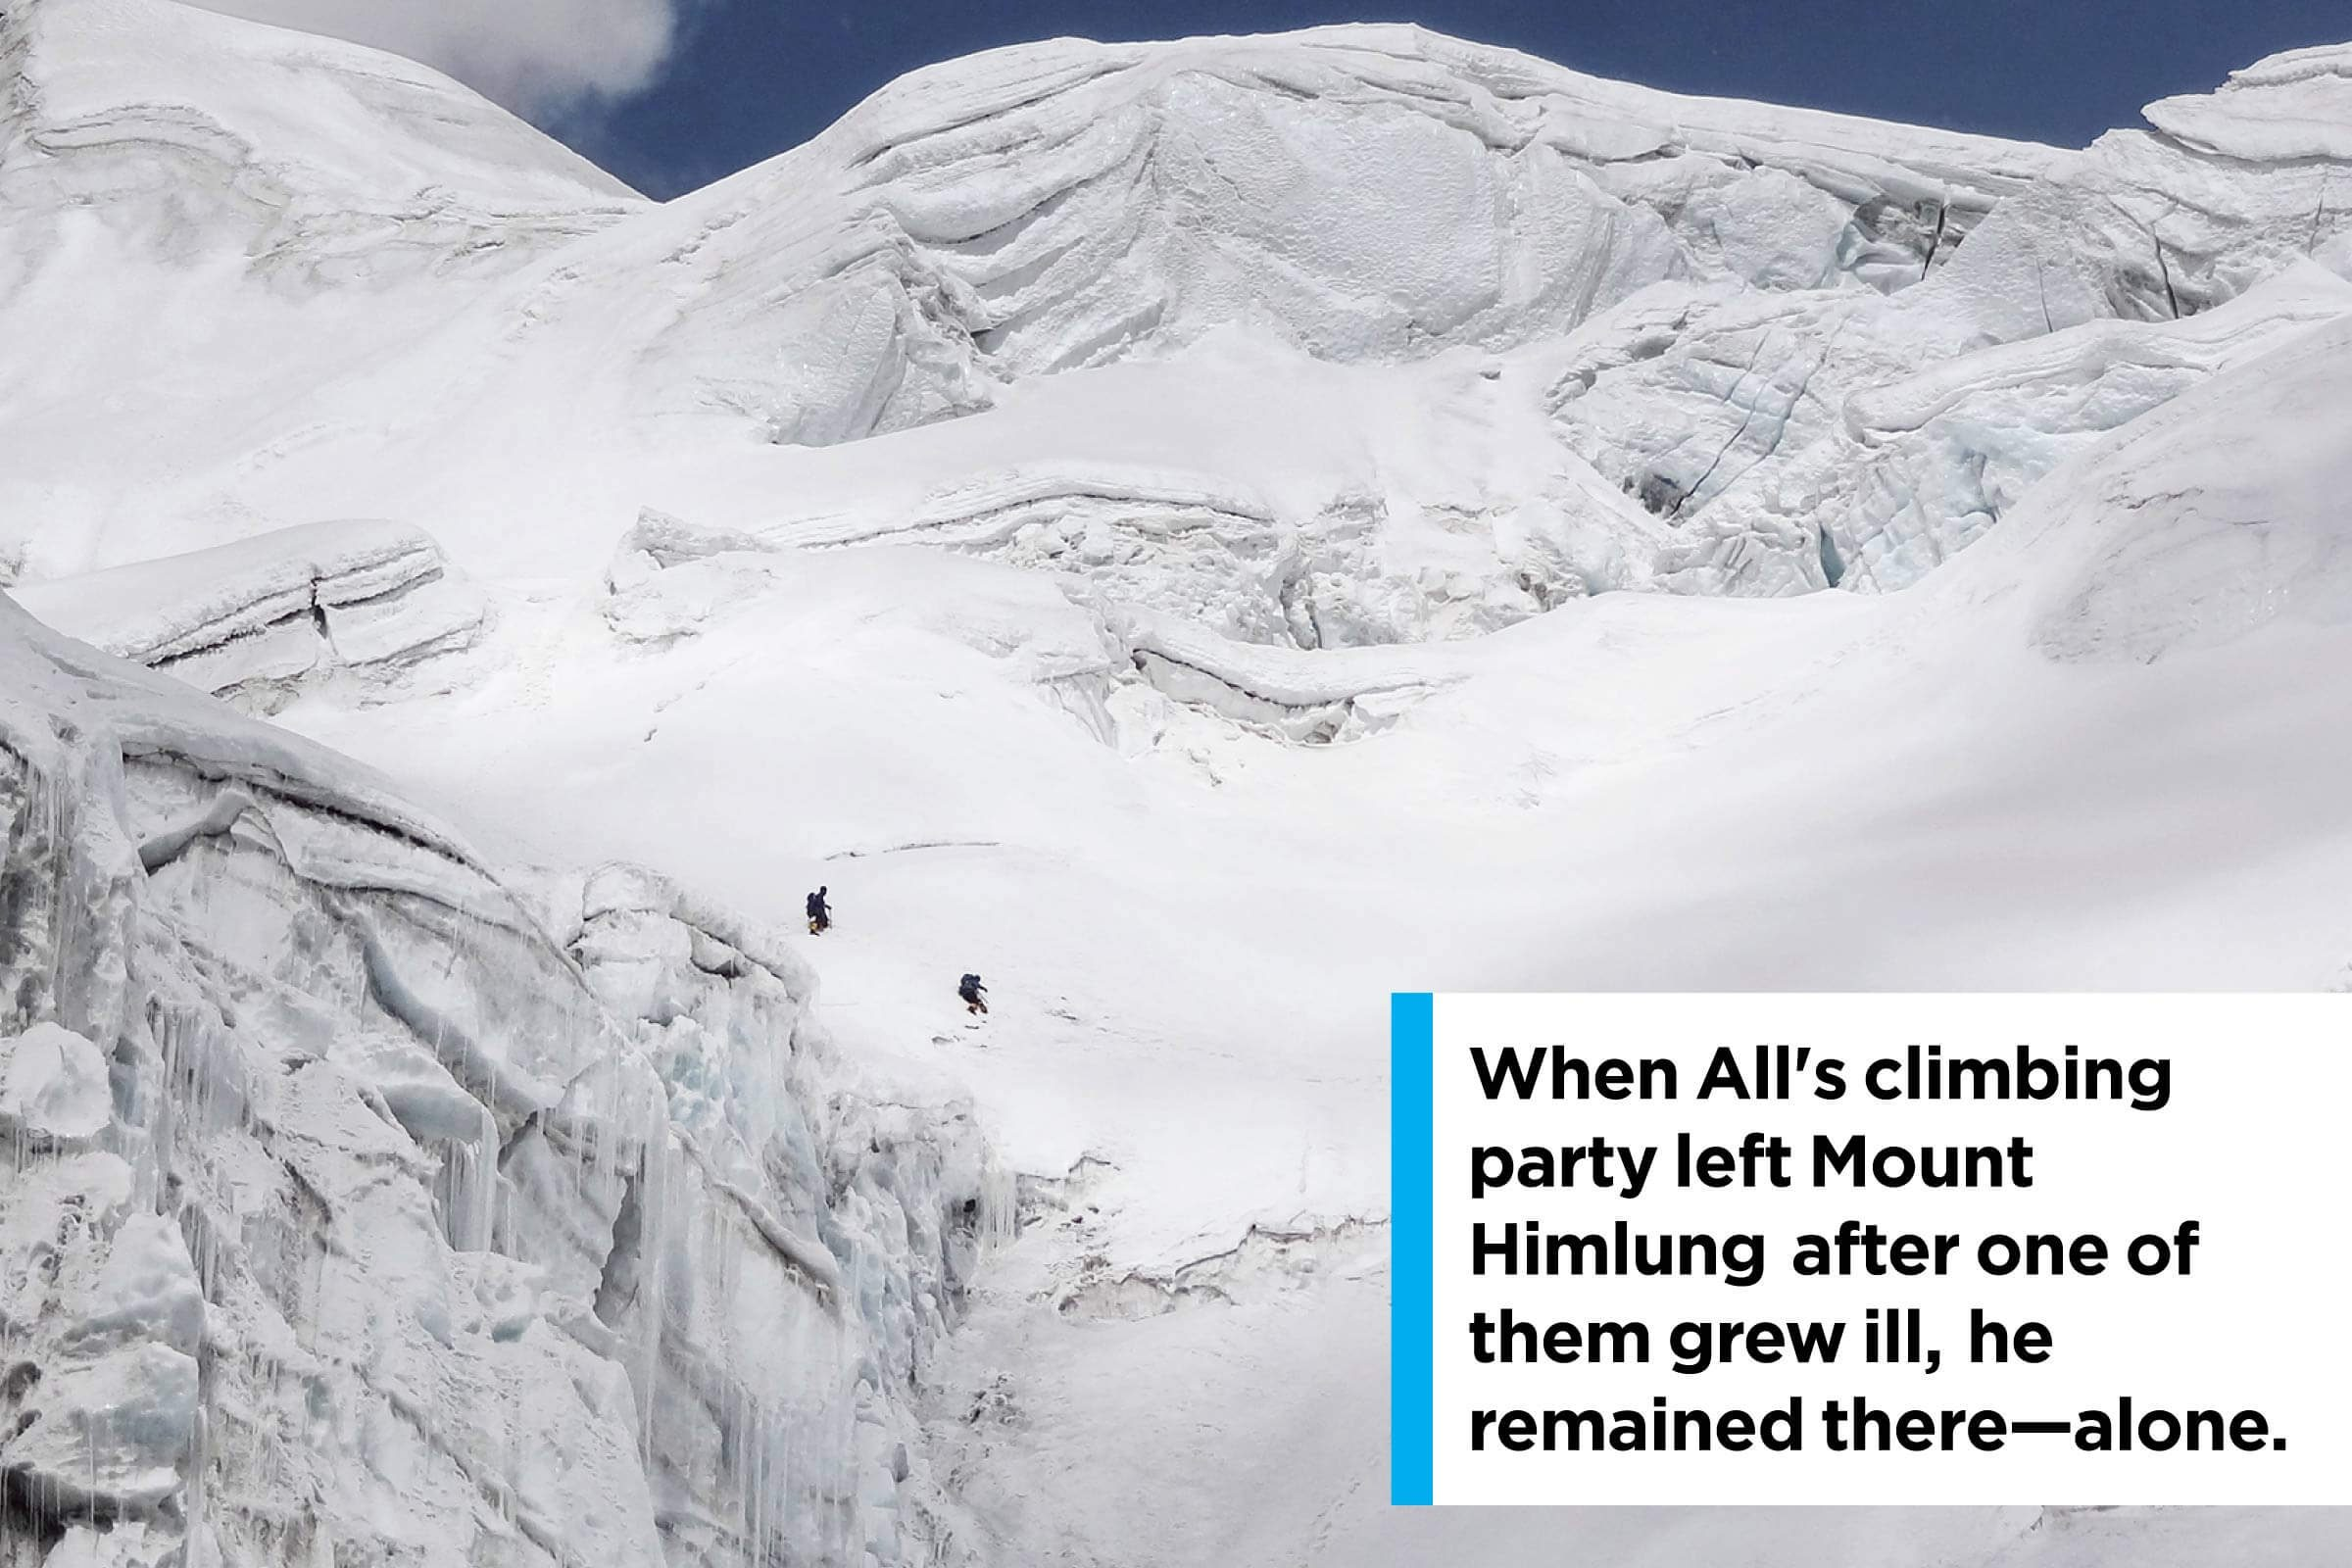 All's climbing party